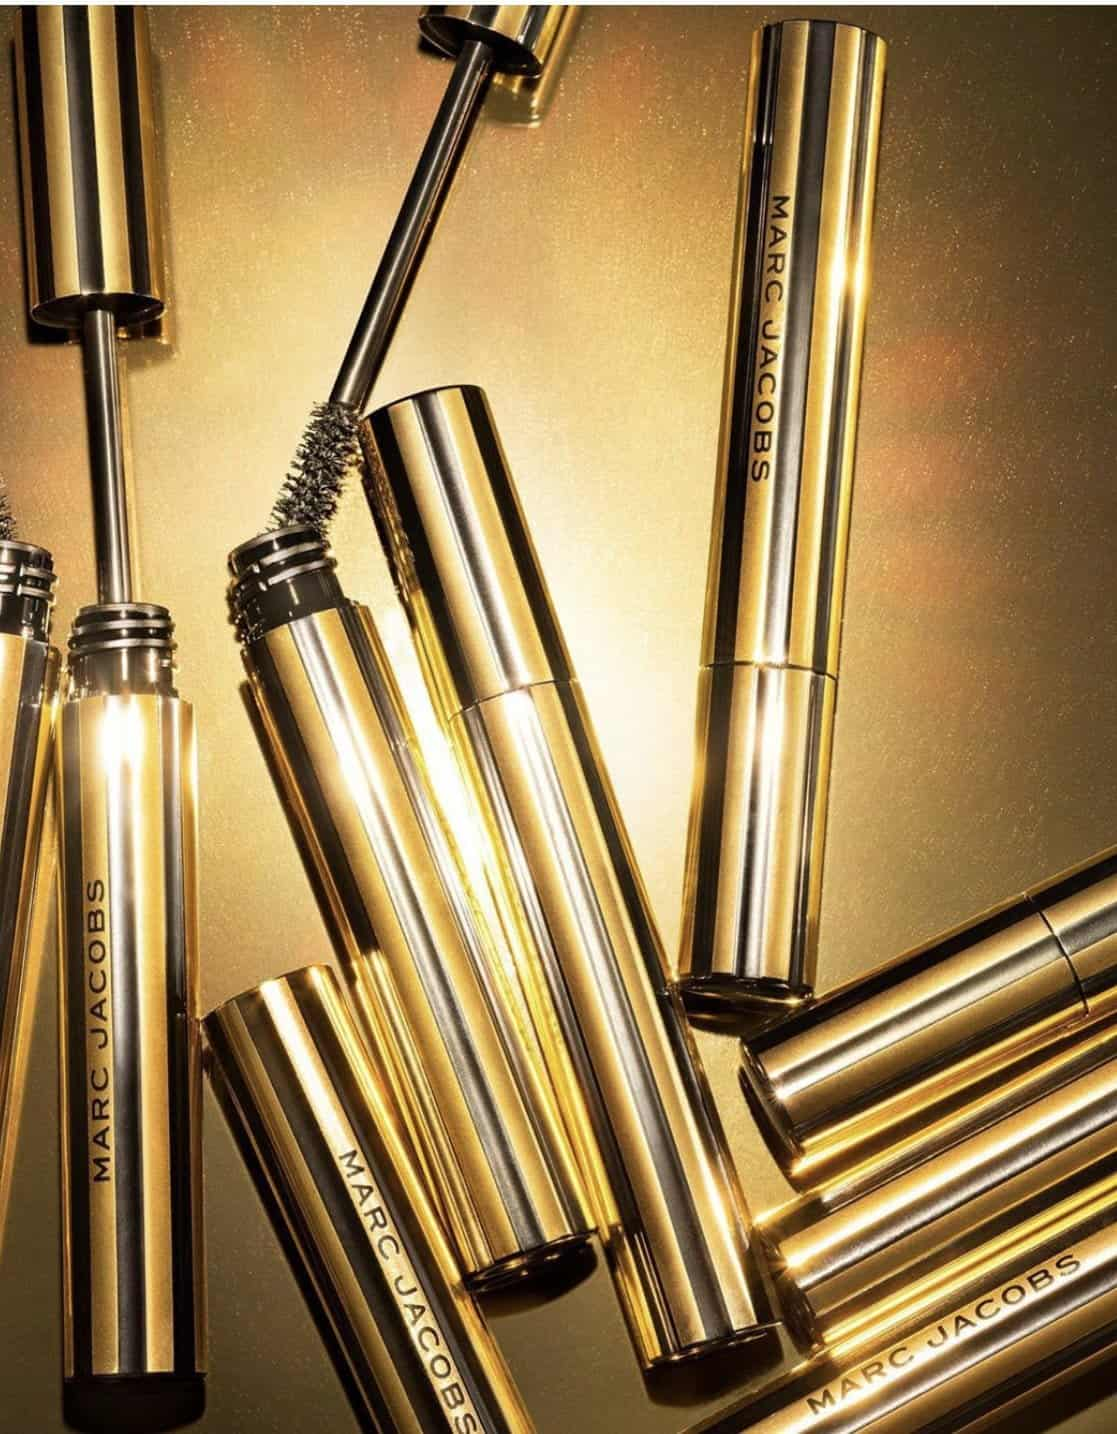 Marc Jacobs At Lashd Mascara